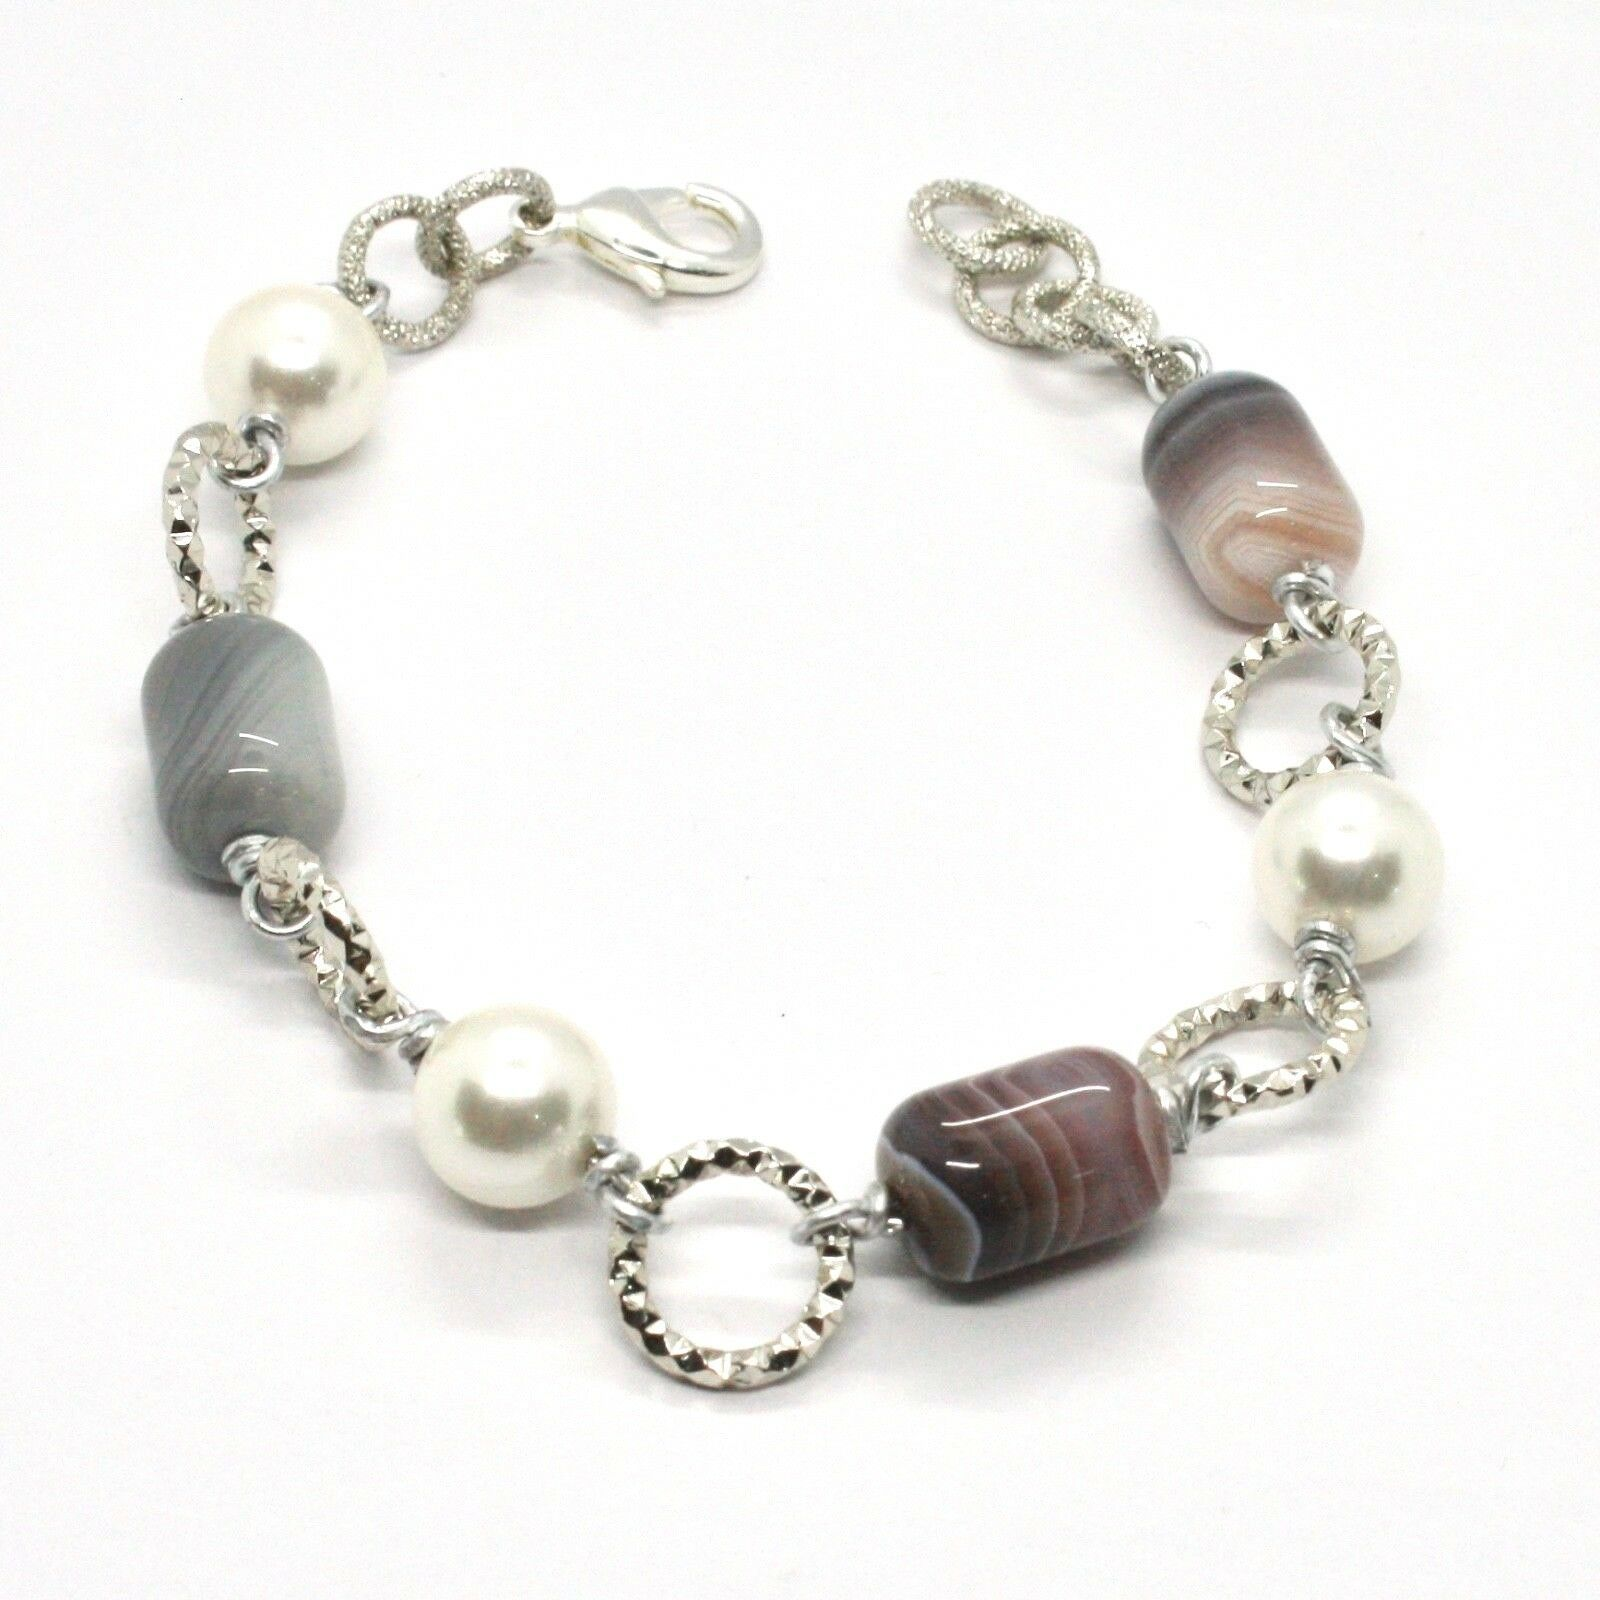 BRACELET THE ALUMINIUM LONG 21 CM WITH CHALCEDONY GRAY AND PEARLS